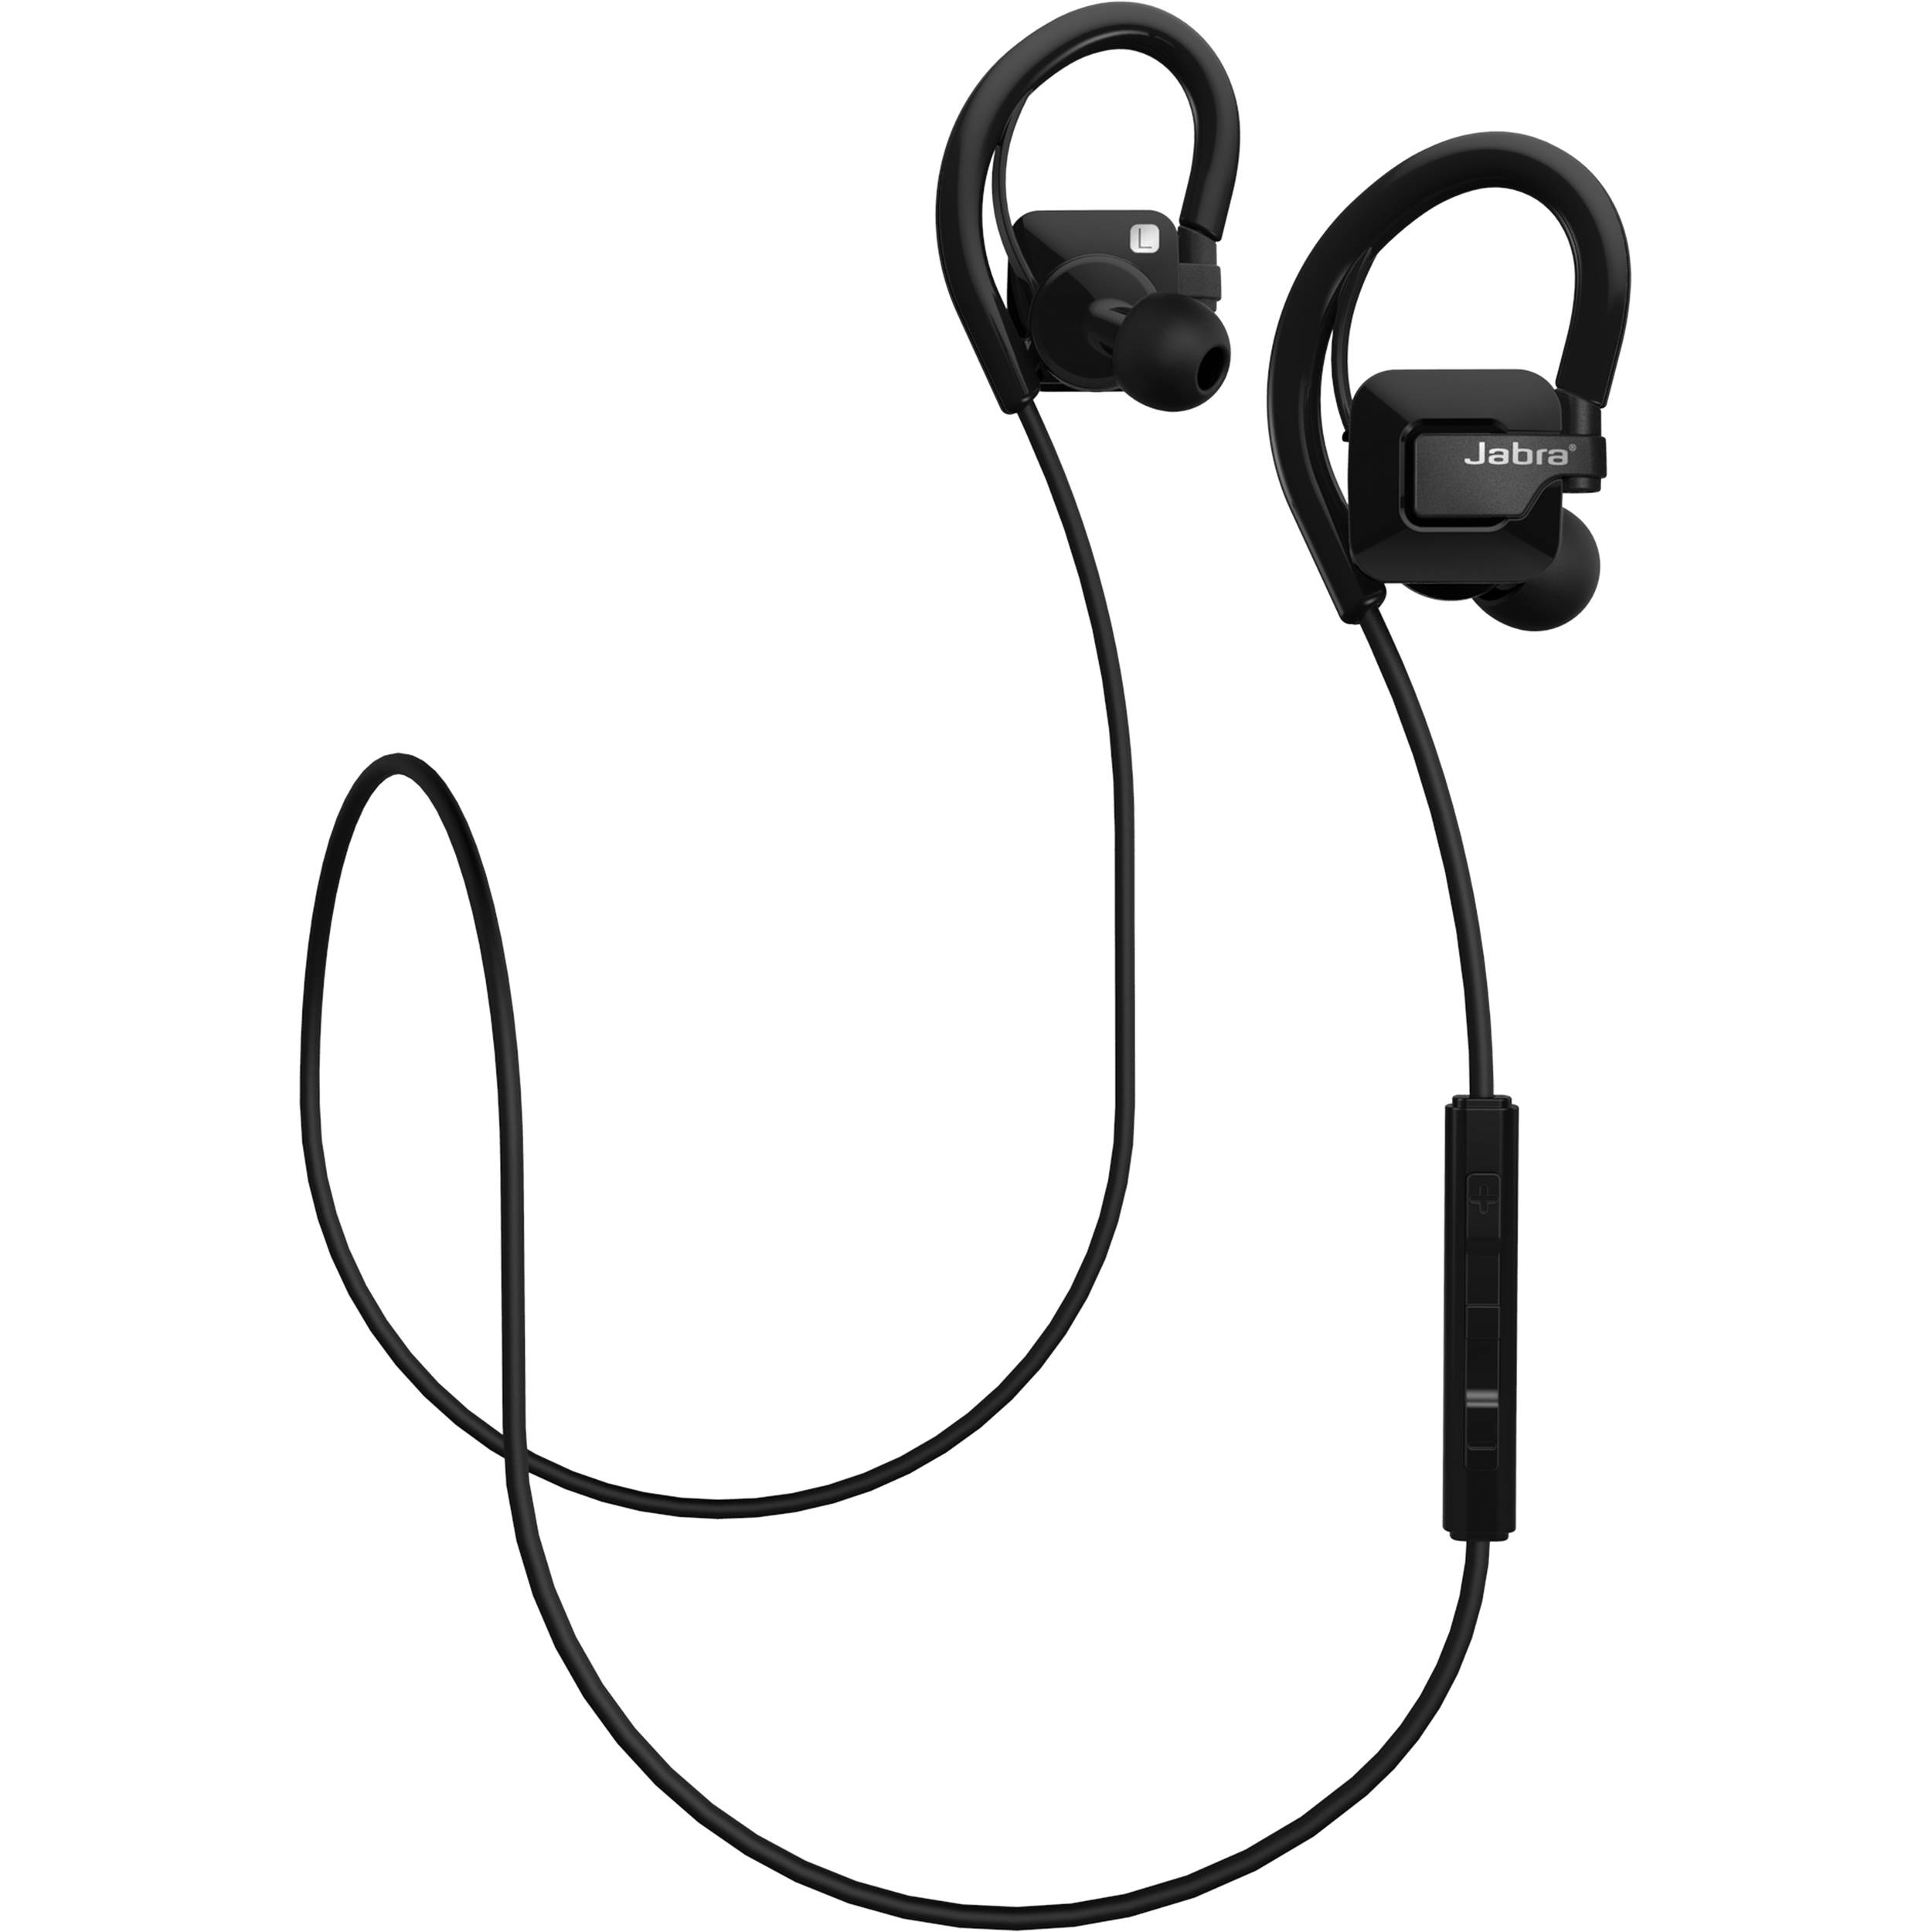 aae4a713a42 Jabra Step Bluetooth Wireless Stereo Headset. This image is for  illustrative purposes only